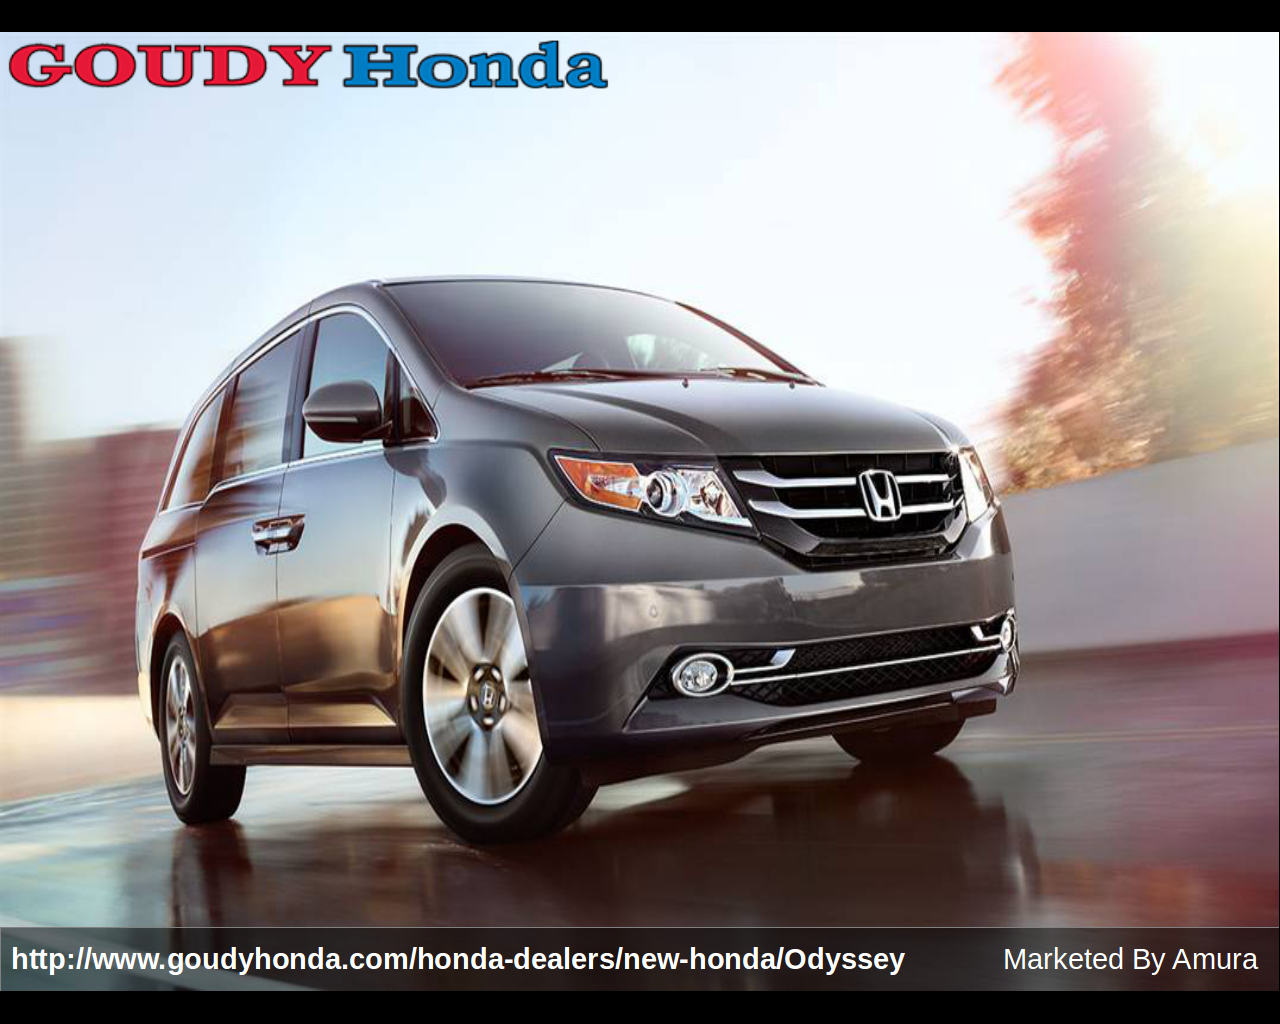 If You Are Looking At Buying Honda Odyssey In Los Angeles, Then Goudy Honda  Is